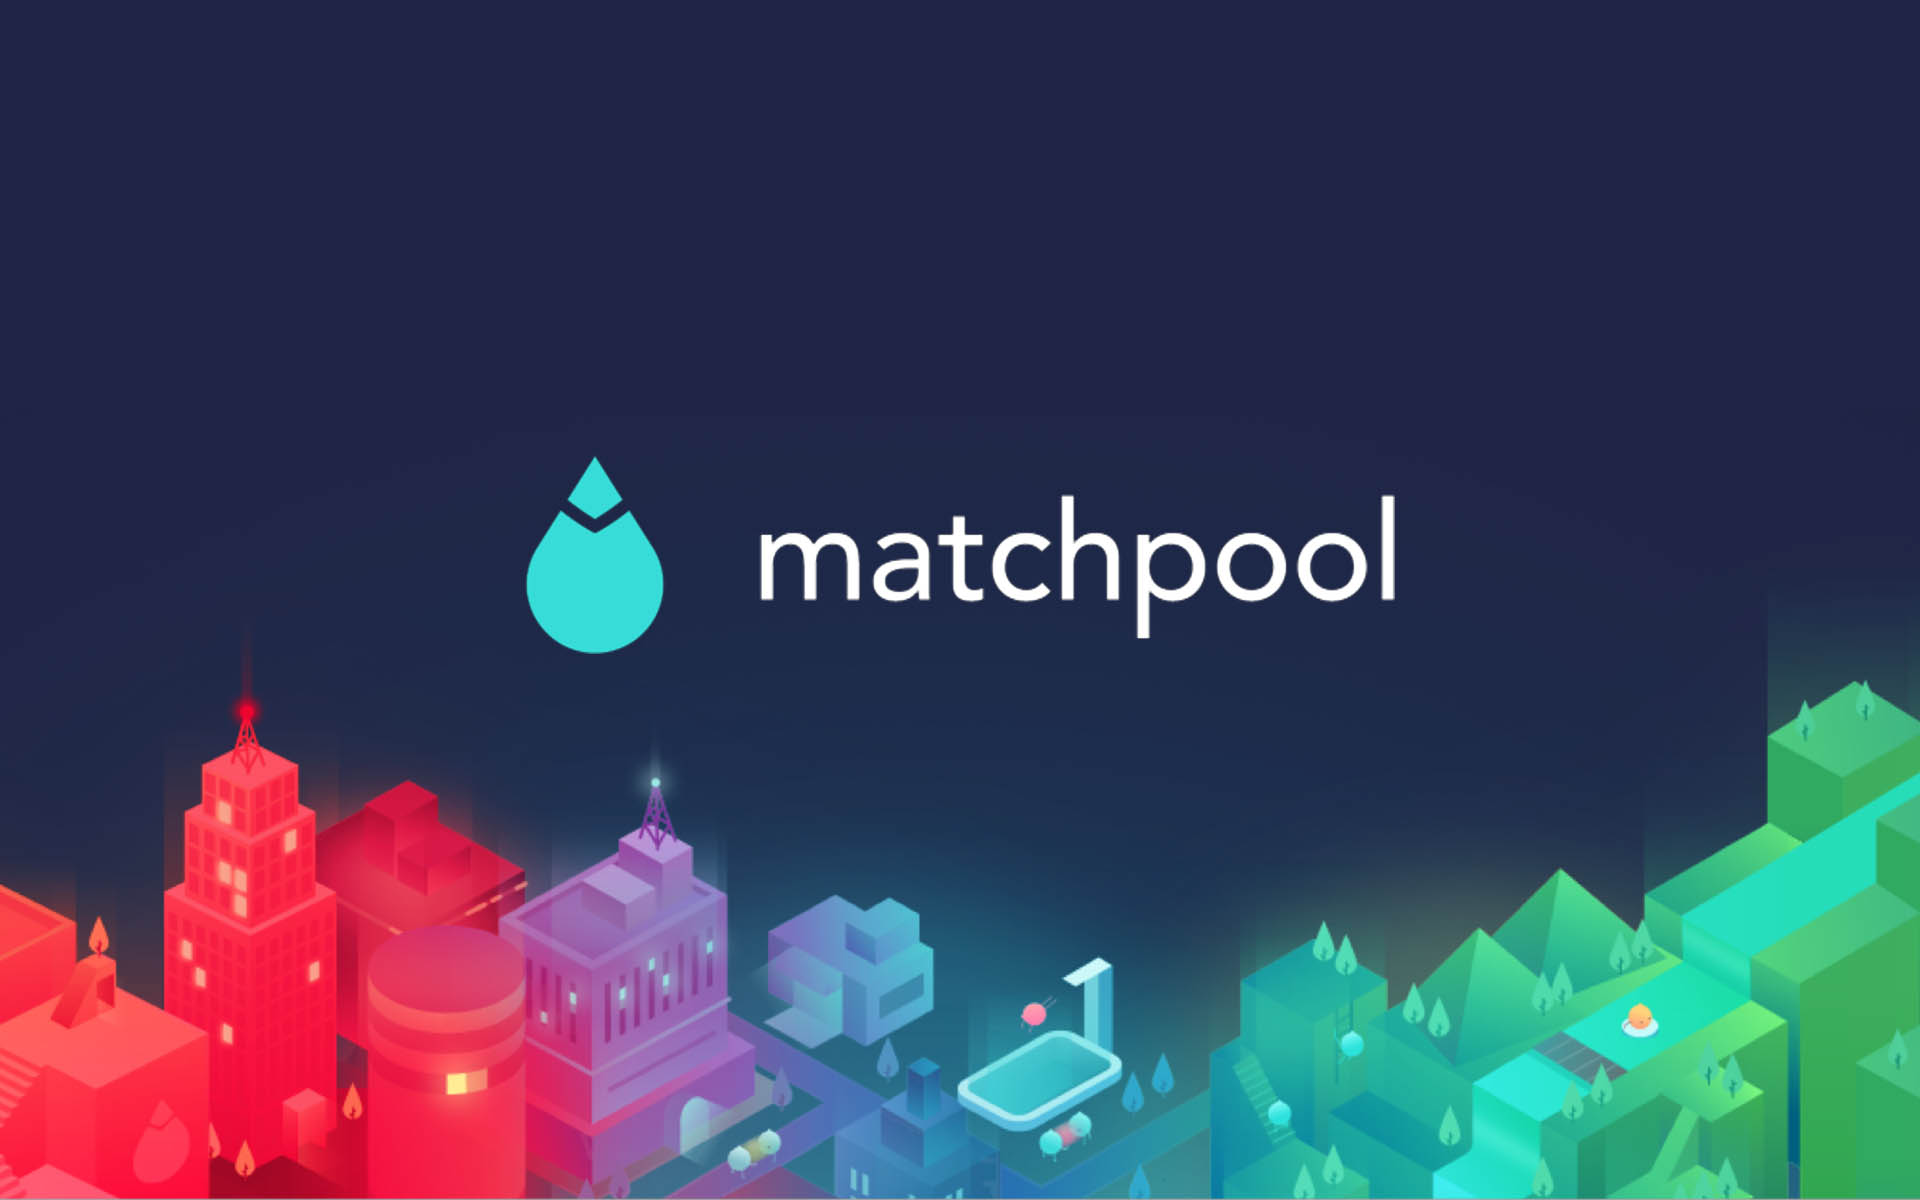 TaaS Forms Technological Partnership With Matchpool to Facilitate Connections in Cryptospace